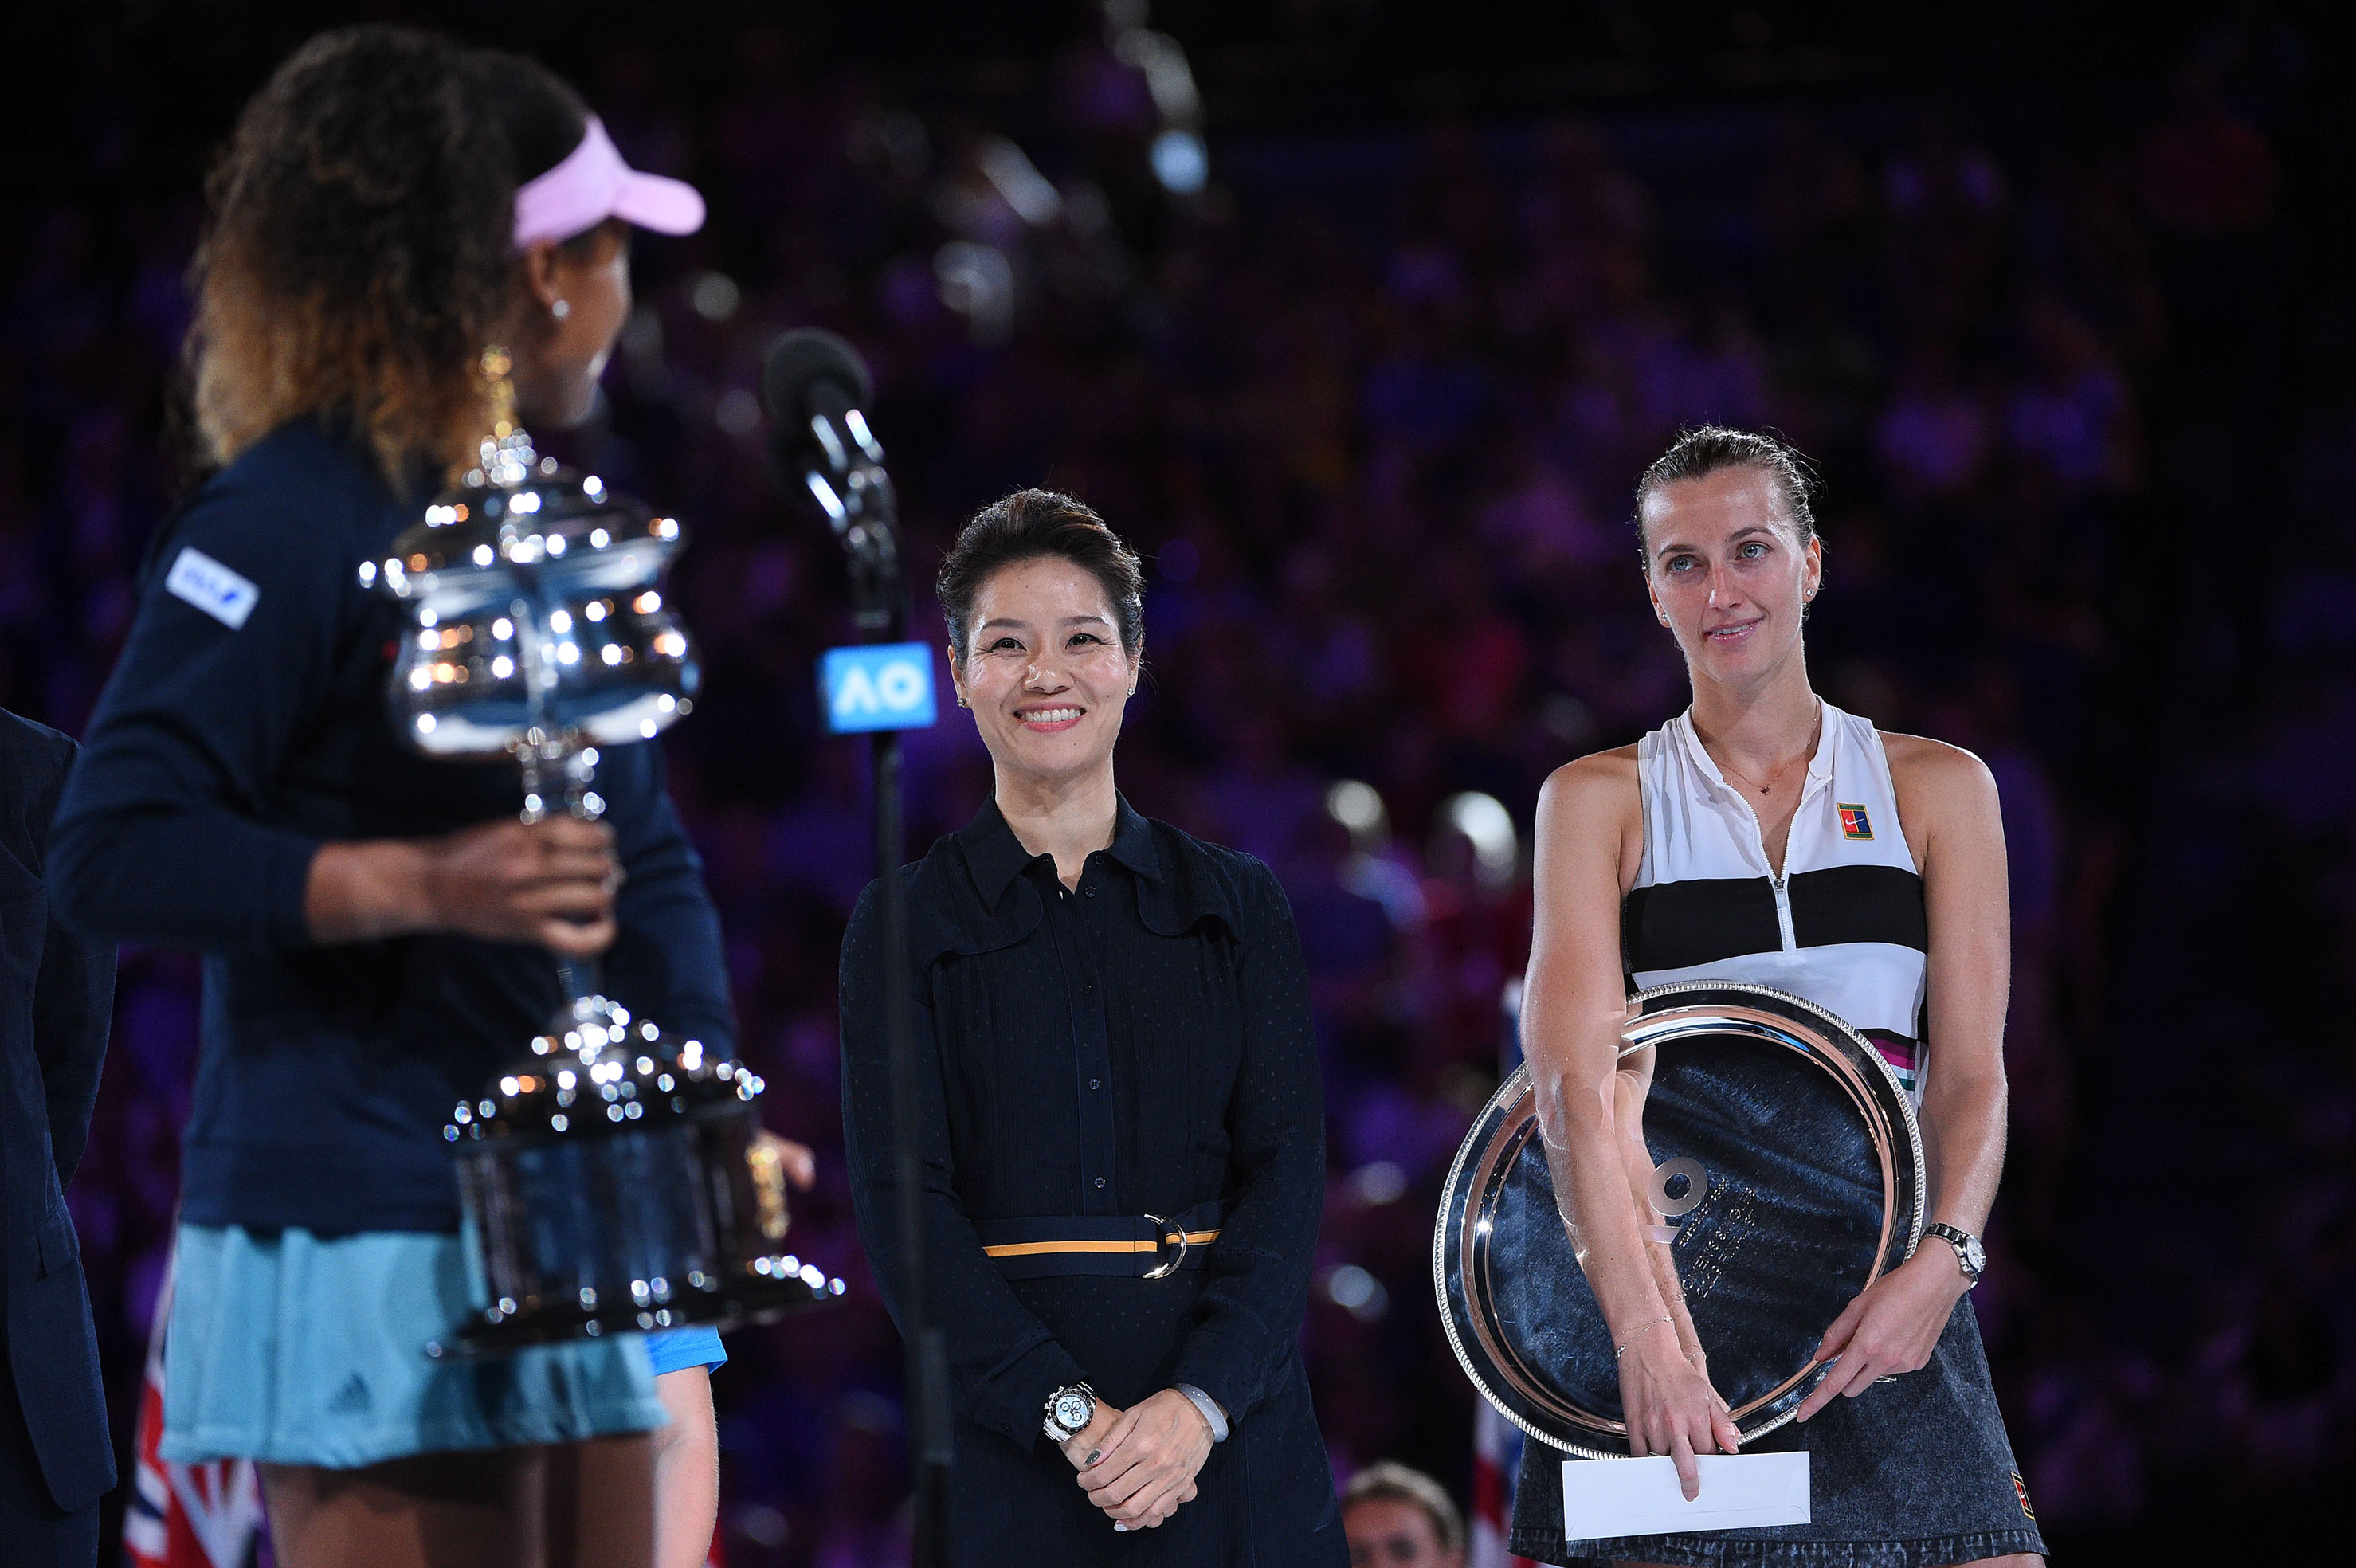 during the trophy presentation athe 2019 Australian Open